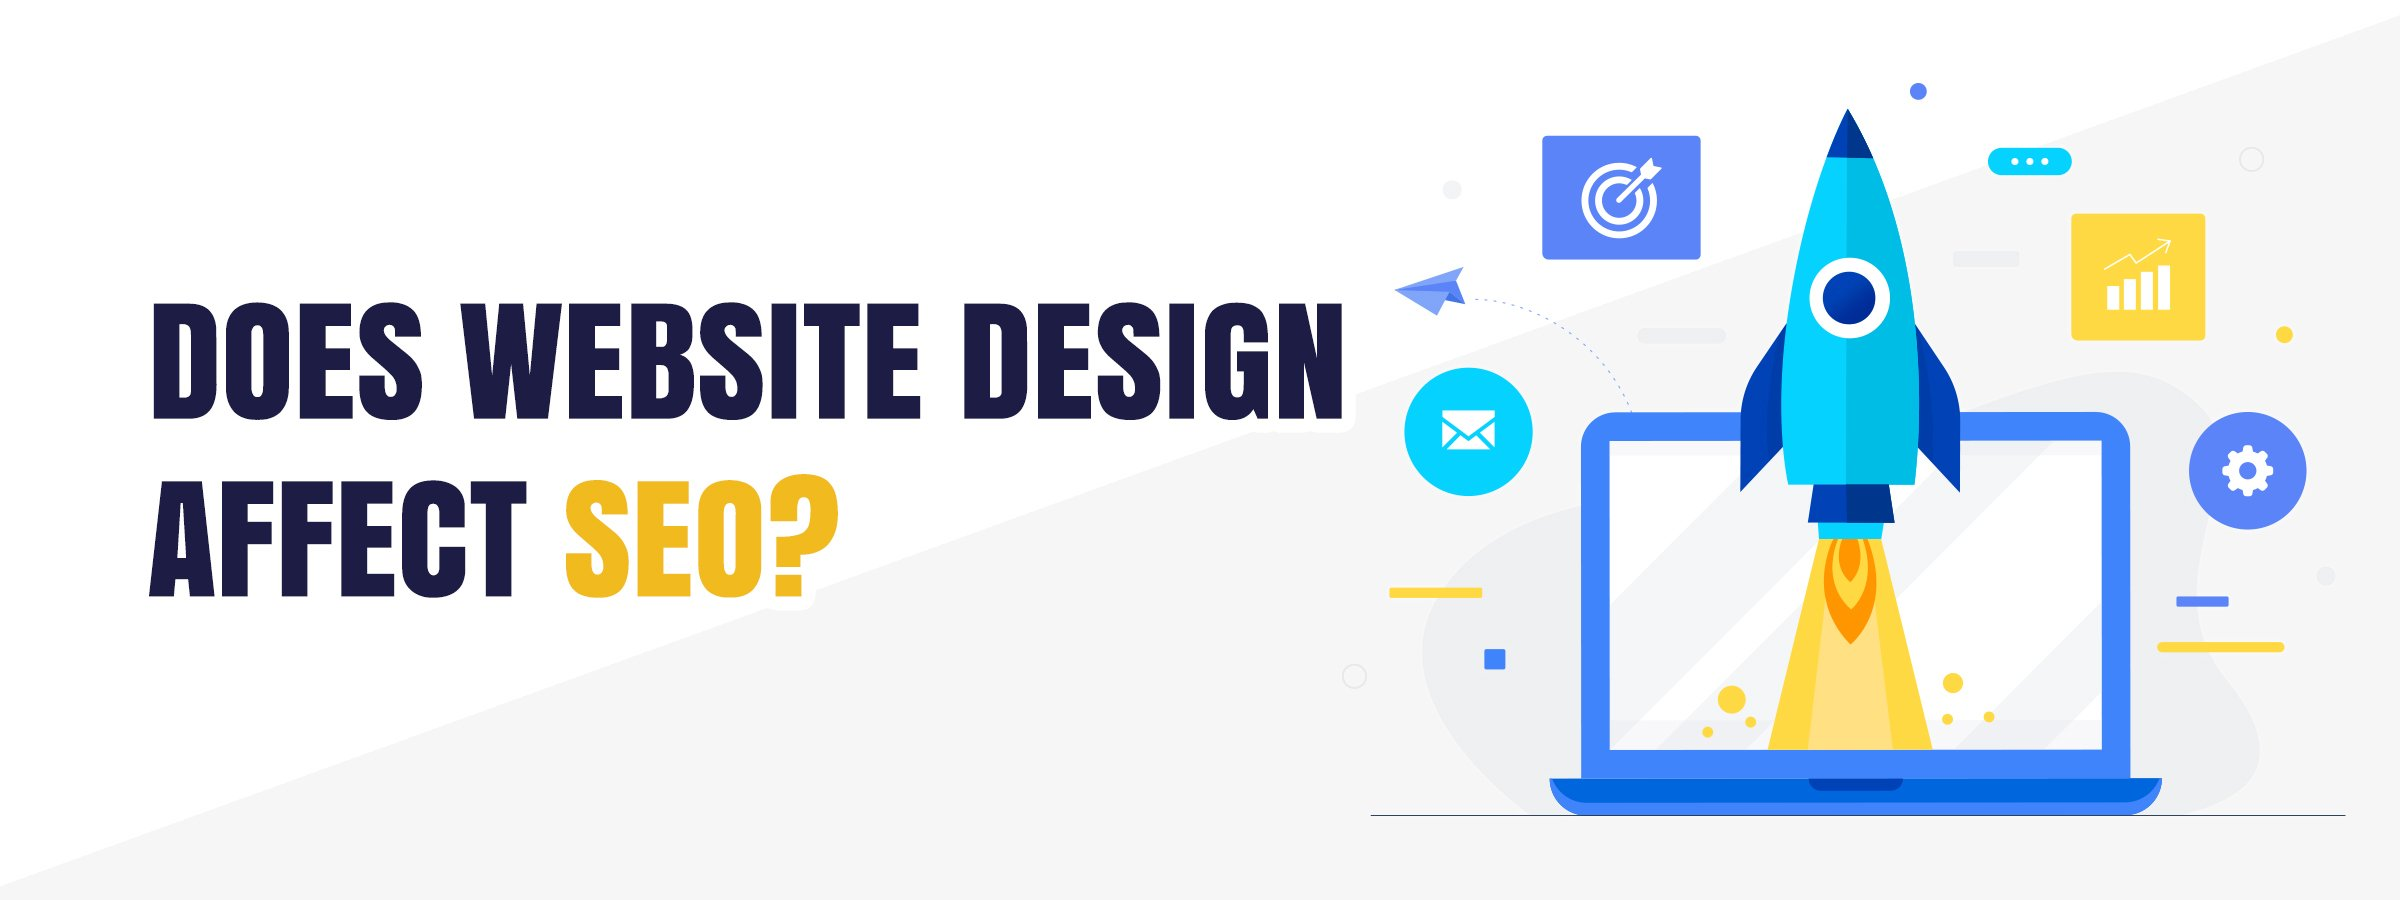 Does_website_design_affect_seo